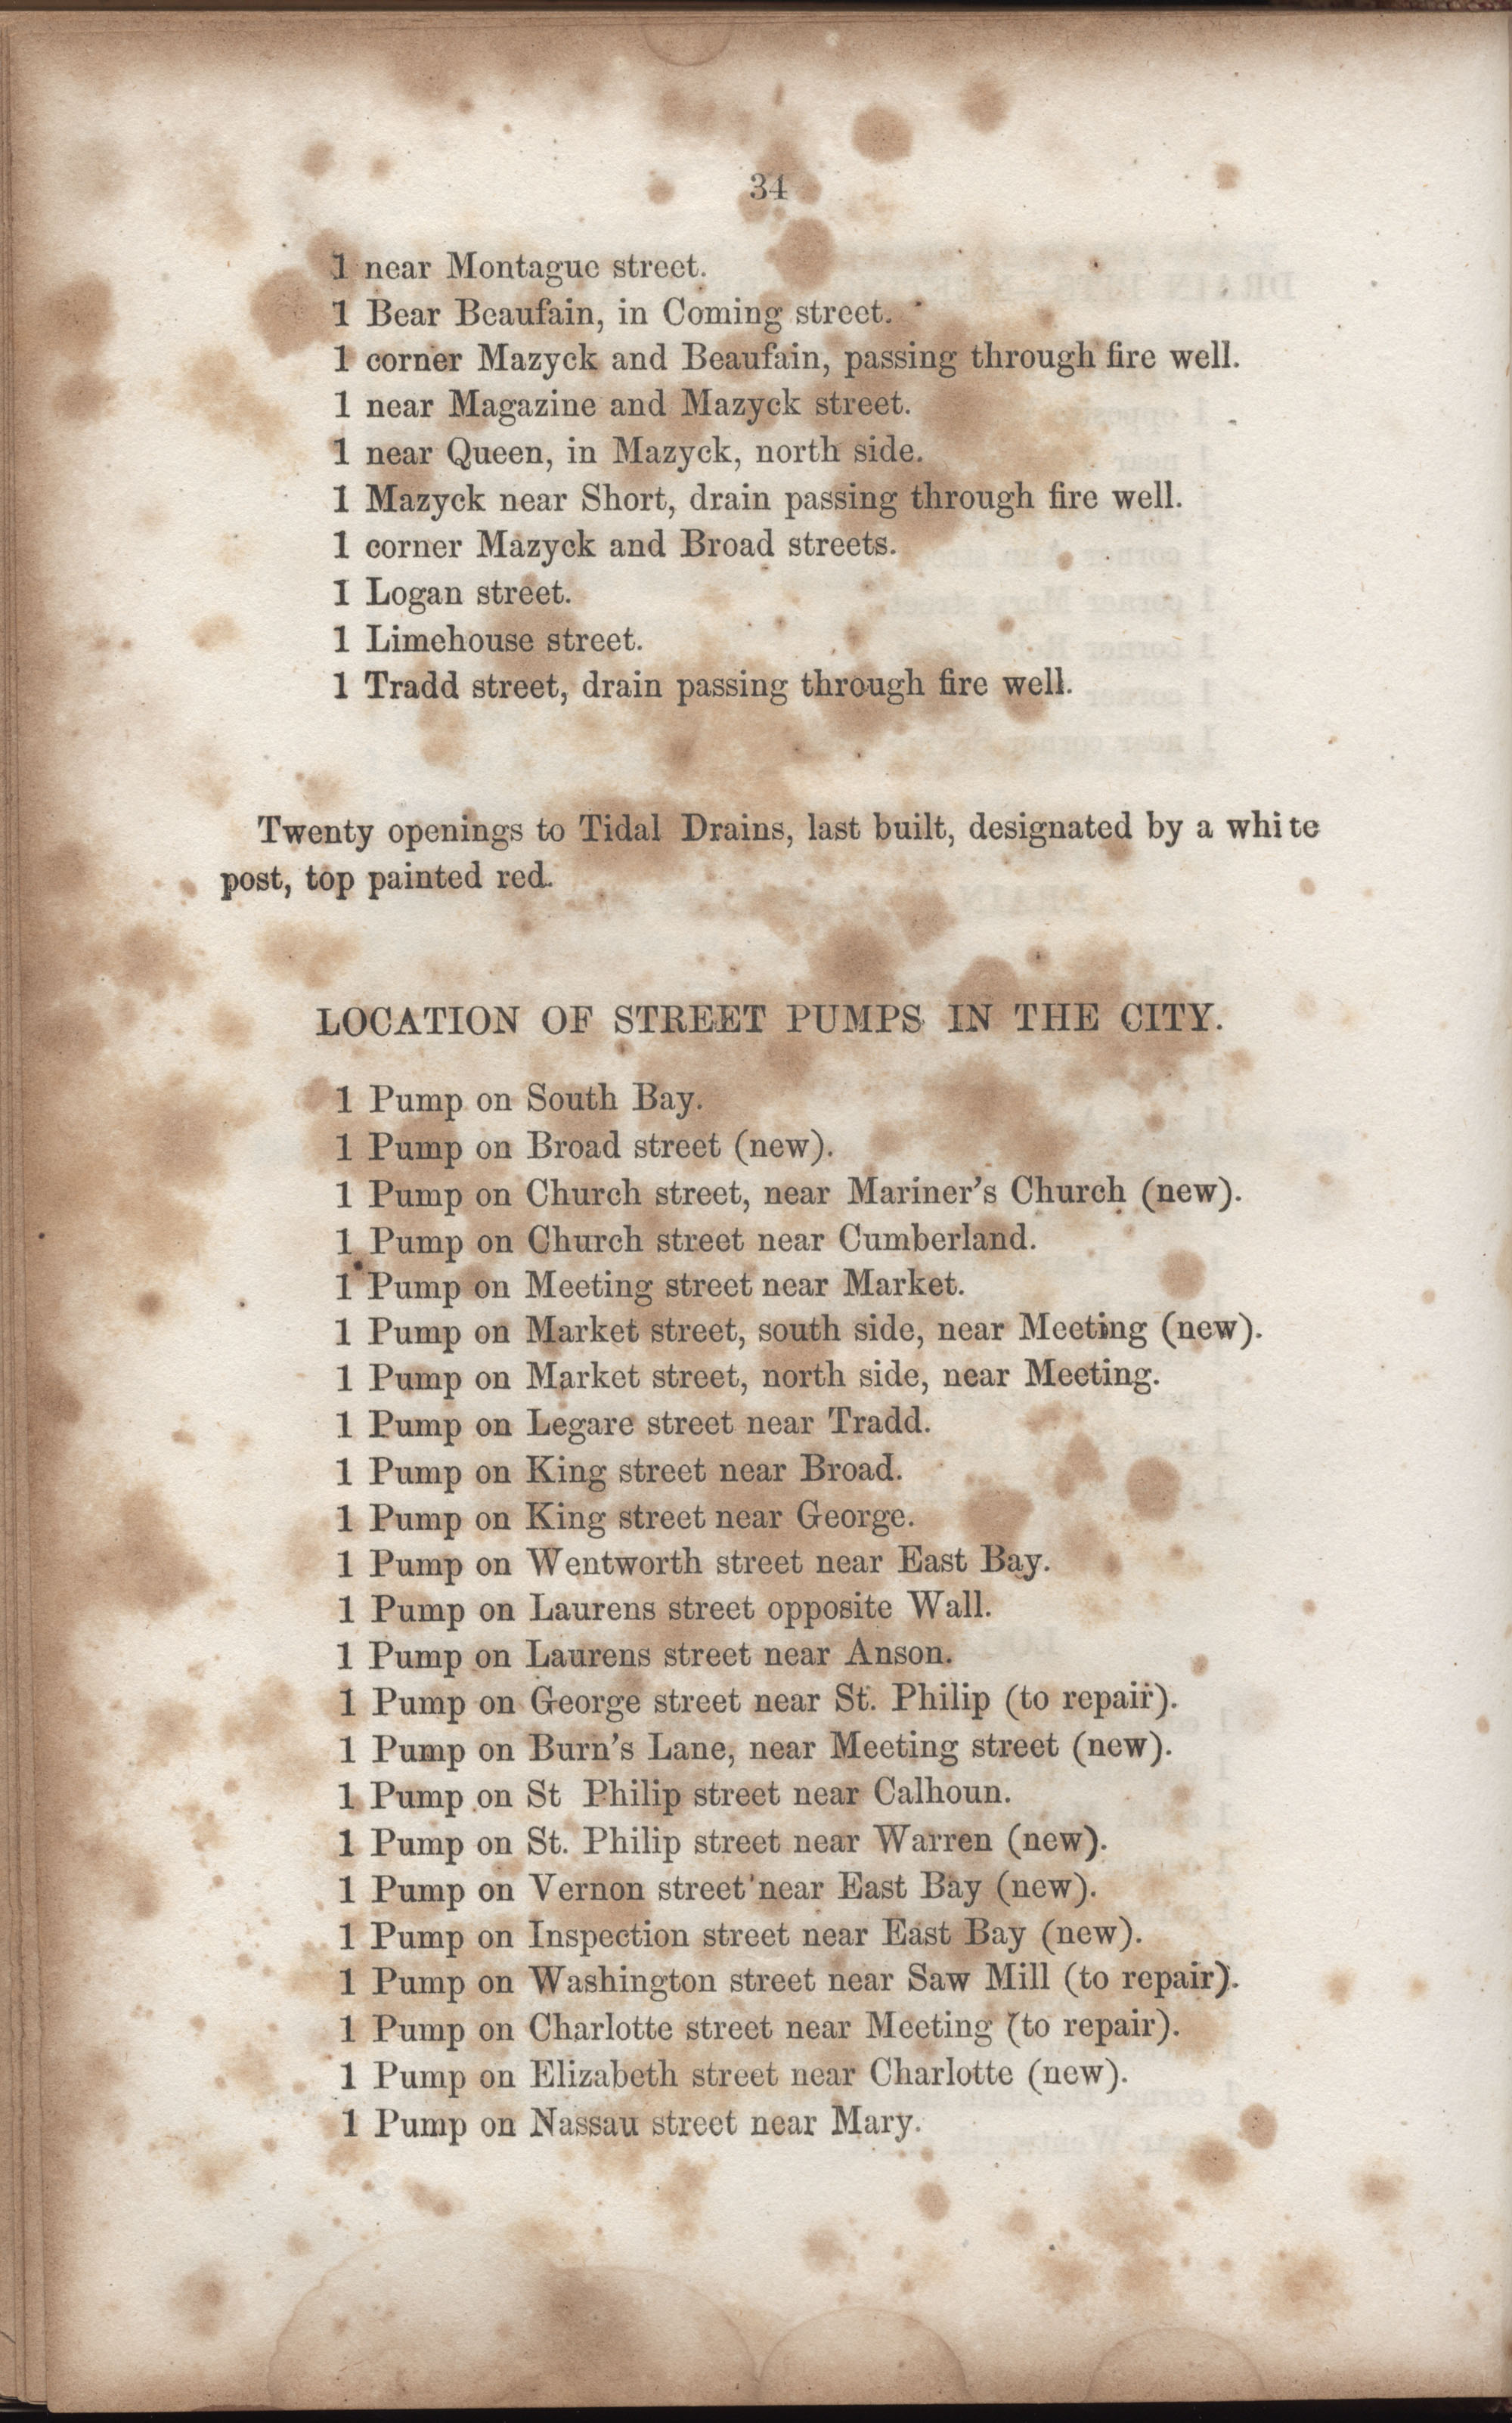 Annual Report of the Chief of the Fire Department of the City of Charleston, page 176